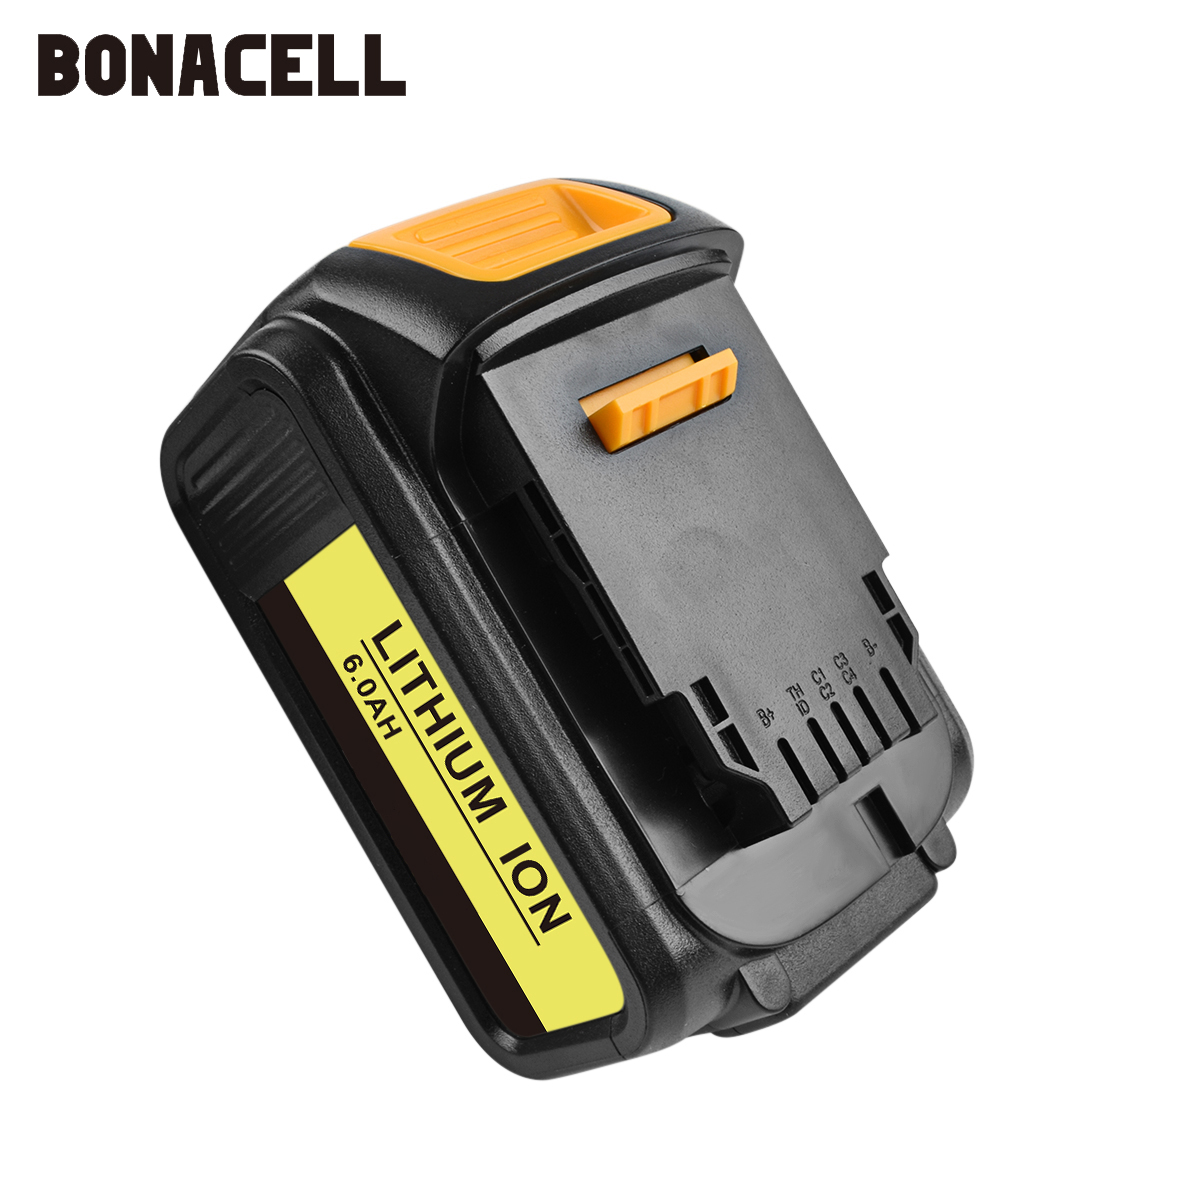 Image 3 - Bonacell 6000mAh 18V for Dewalt Power Tool Battery for DCB180 DCB181 DCB182 DCB201 DCB201 2 DCB200 DCB200 2 DCB204 2 L10-in Replacement Batteries from Consumer Electronics